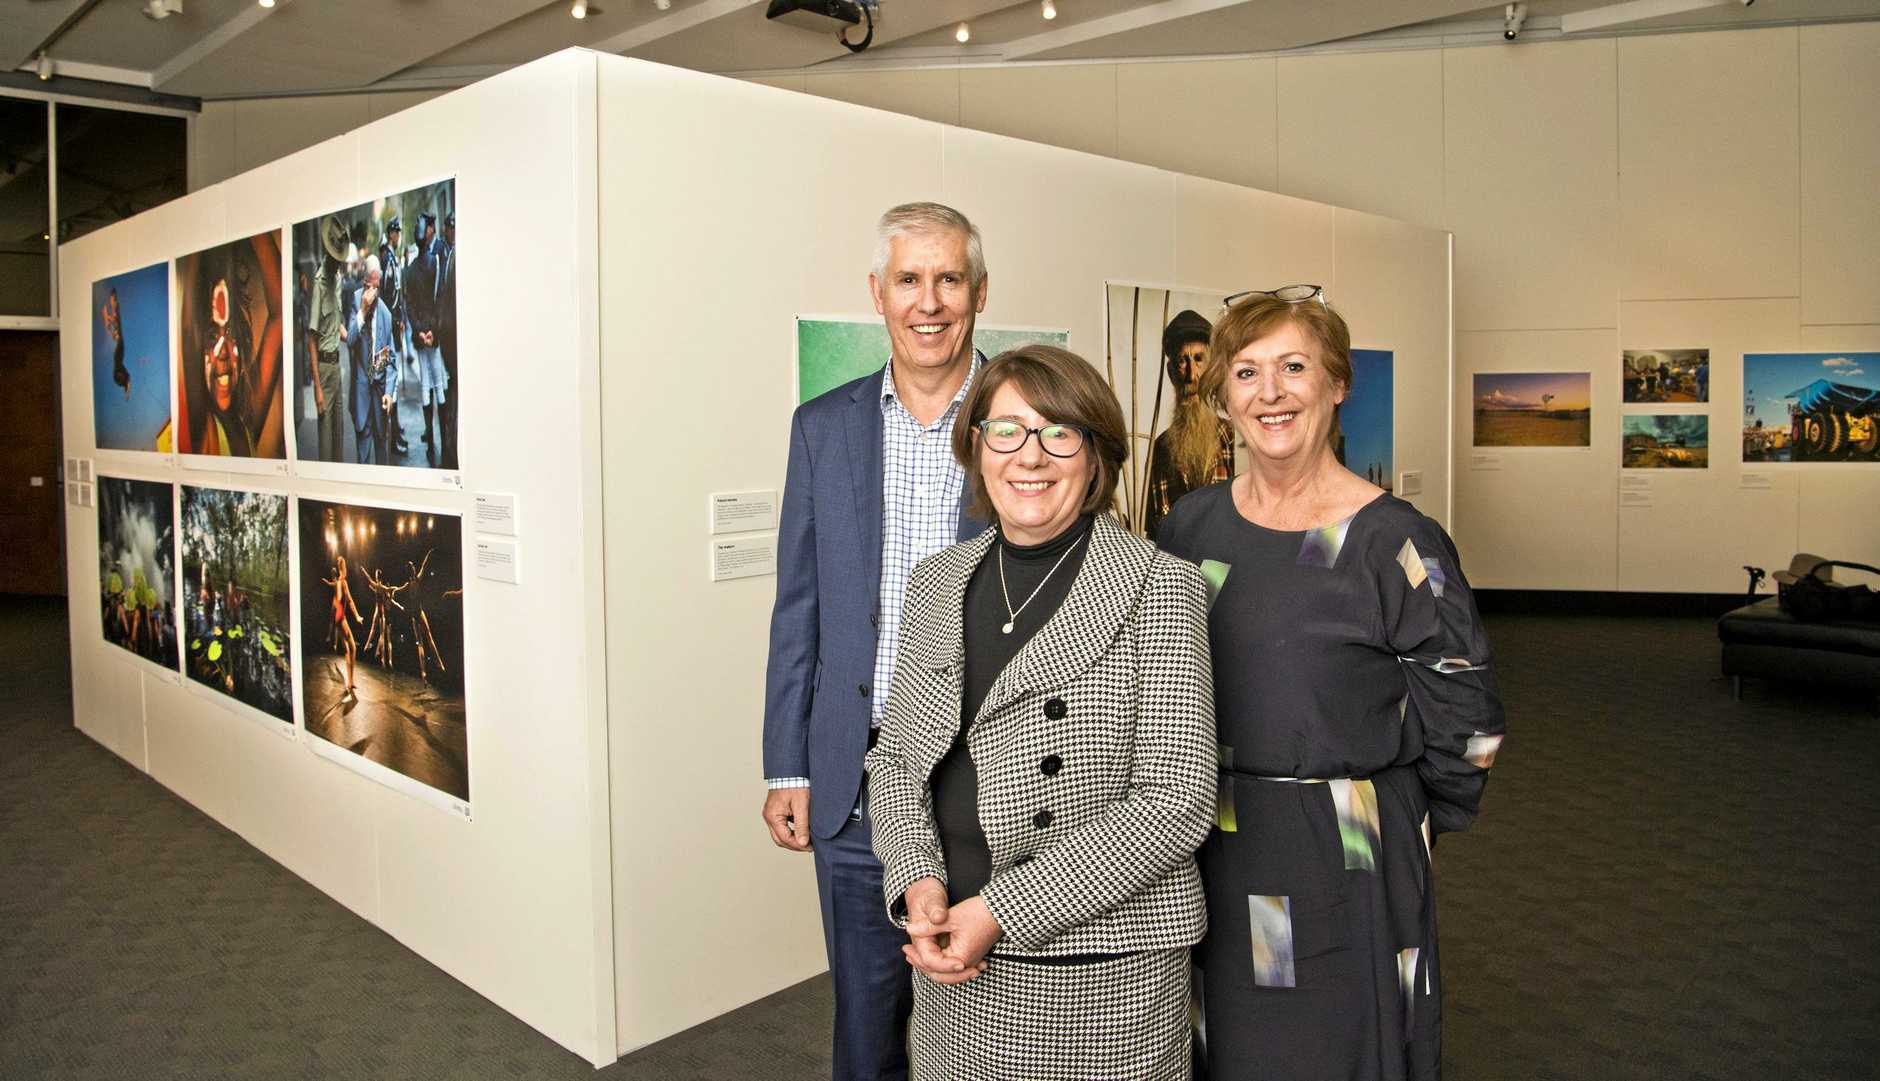 STORIES: At the opening of A Portrait of Australia at Cobb and Co are (from left) Qld Museum CEO Jim Thompson, Australian Geographic editor Chrissie Goldrick and National Museum of Australia assistant director Ruth Wilson.